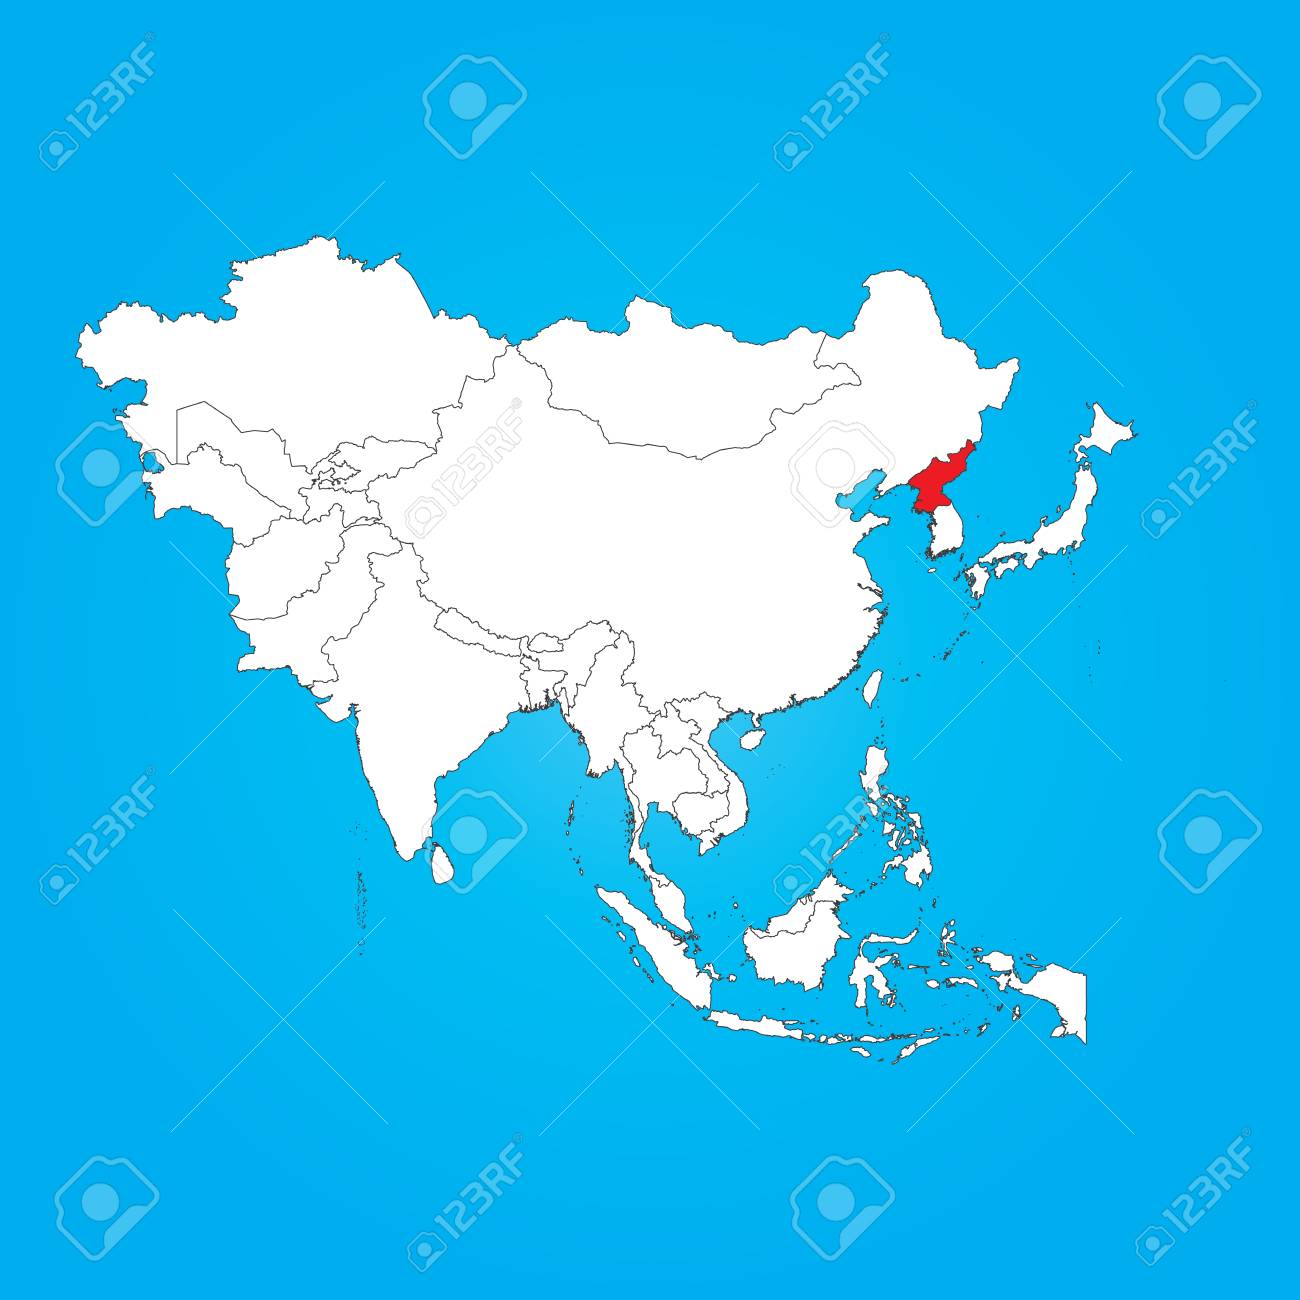 A Map Of Asia With A Selected Country Of North Korea Royalty Free